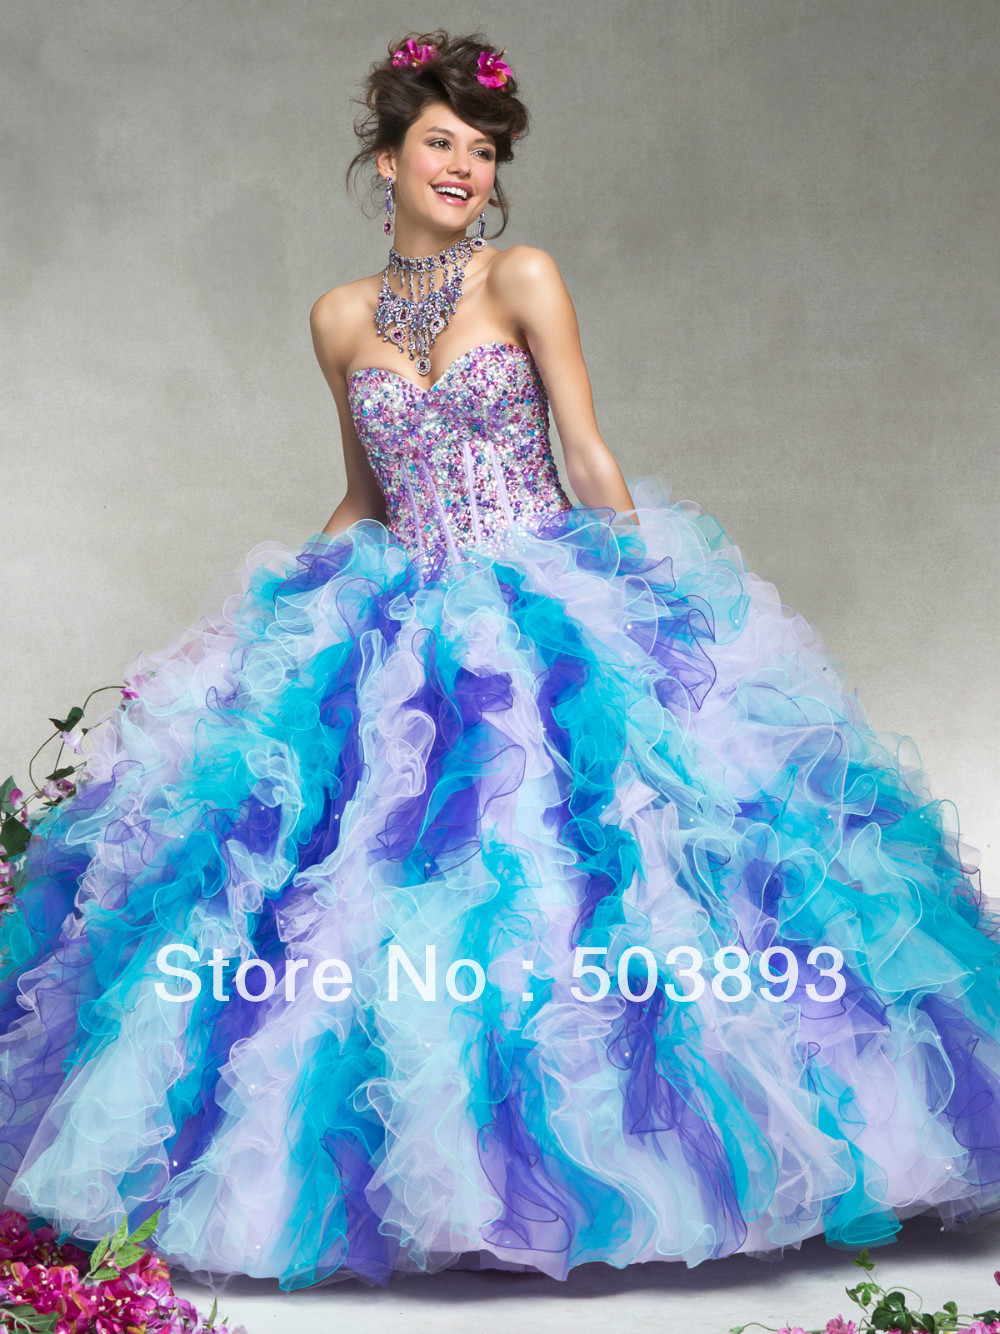 Amazing Party Dresses For Sweet 16 Collection - All Wedding Dresses ...